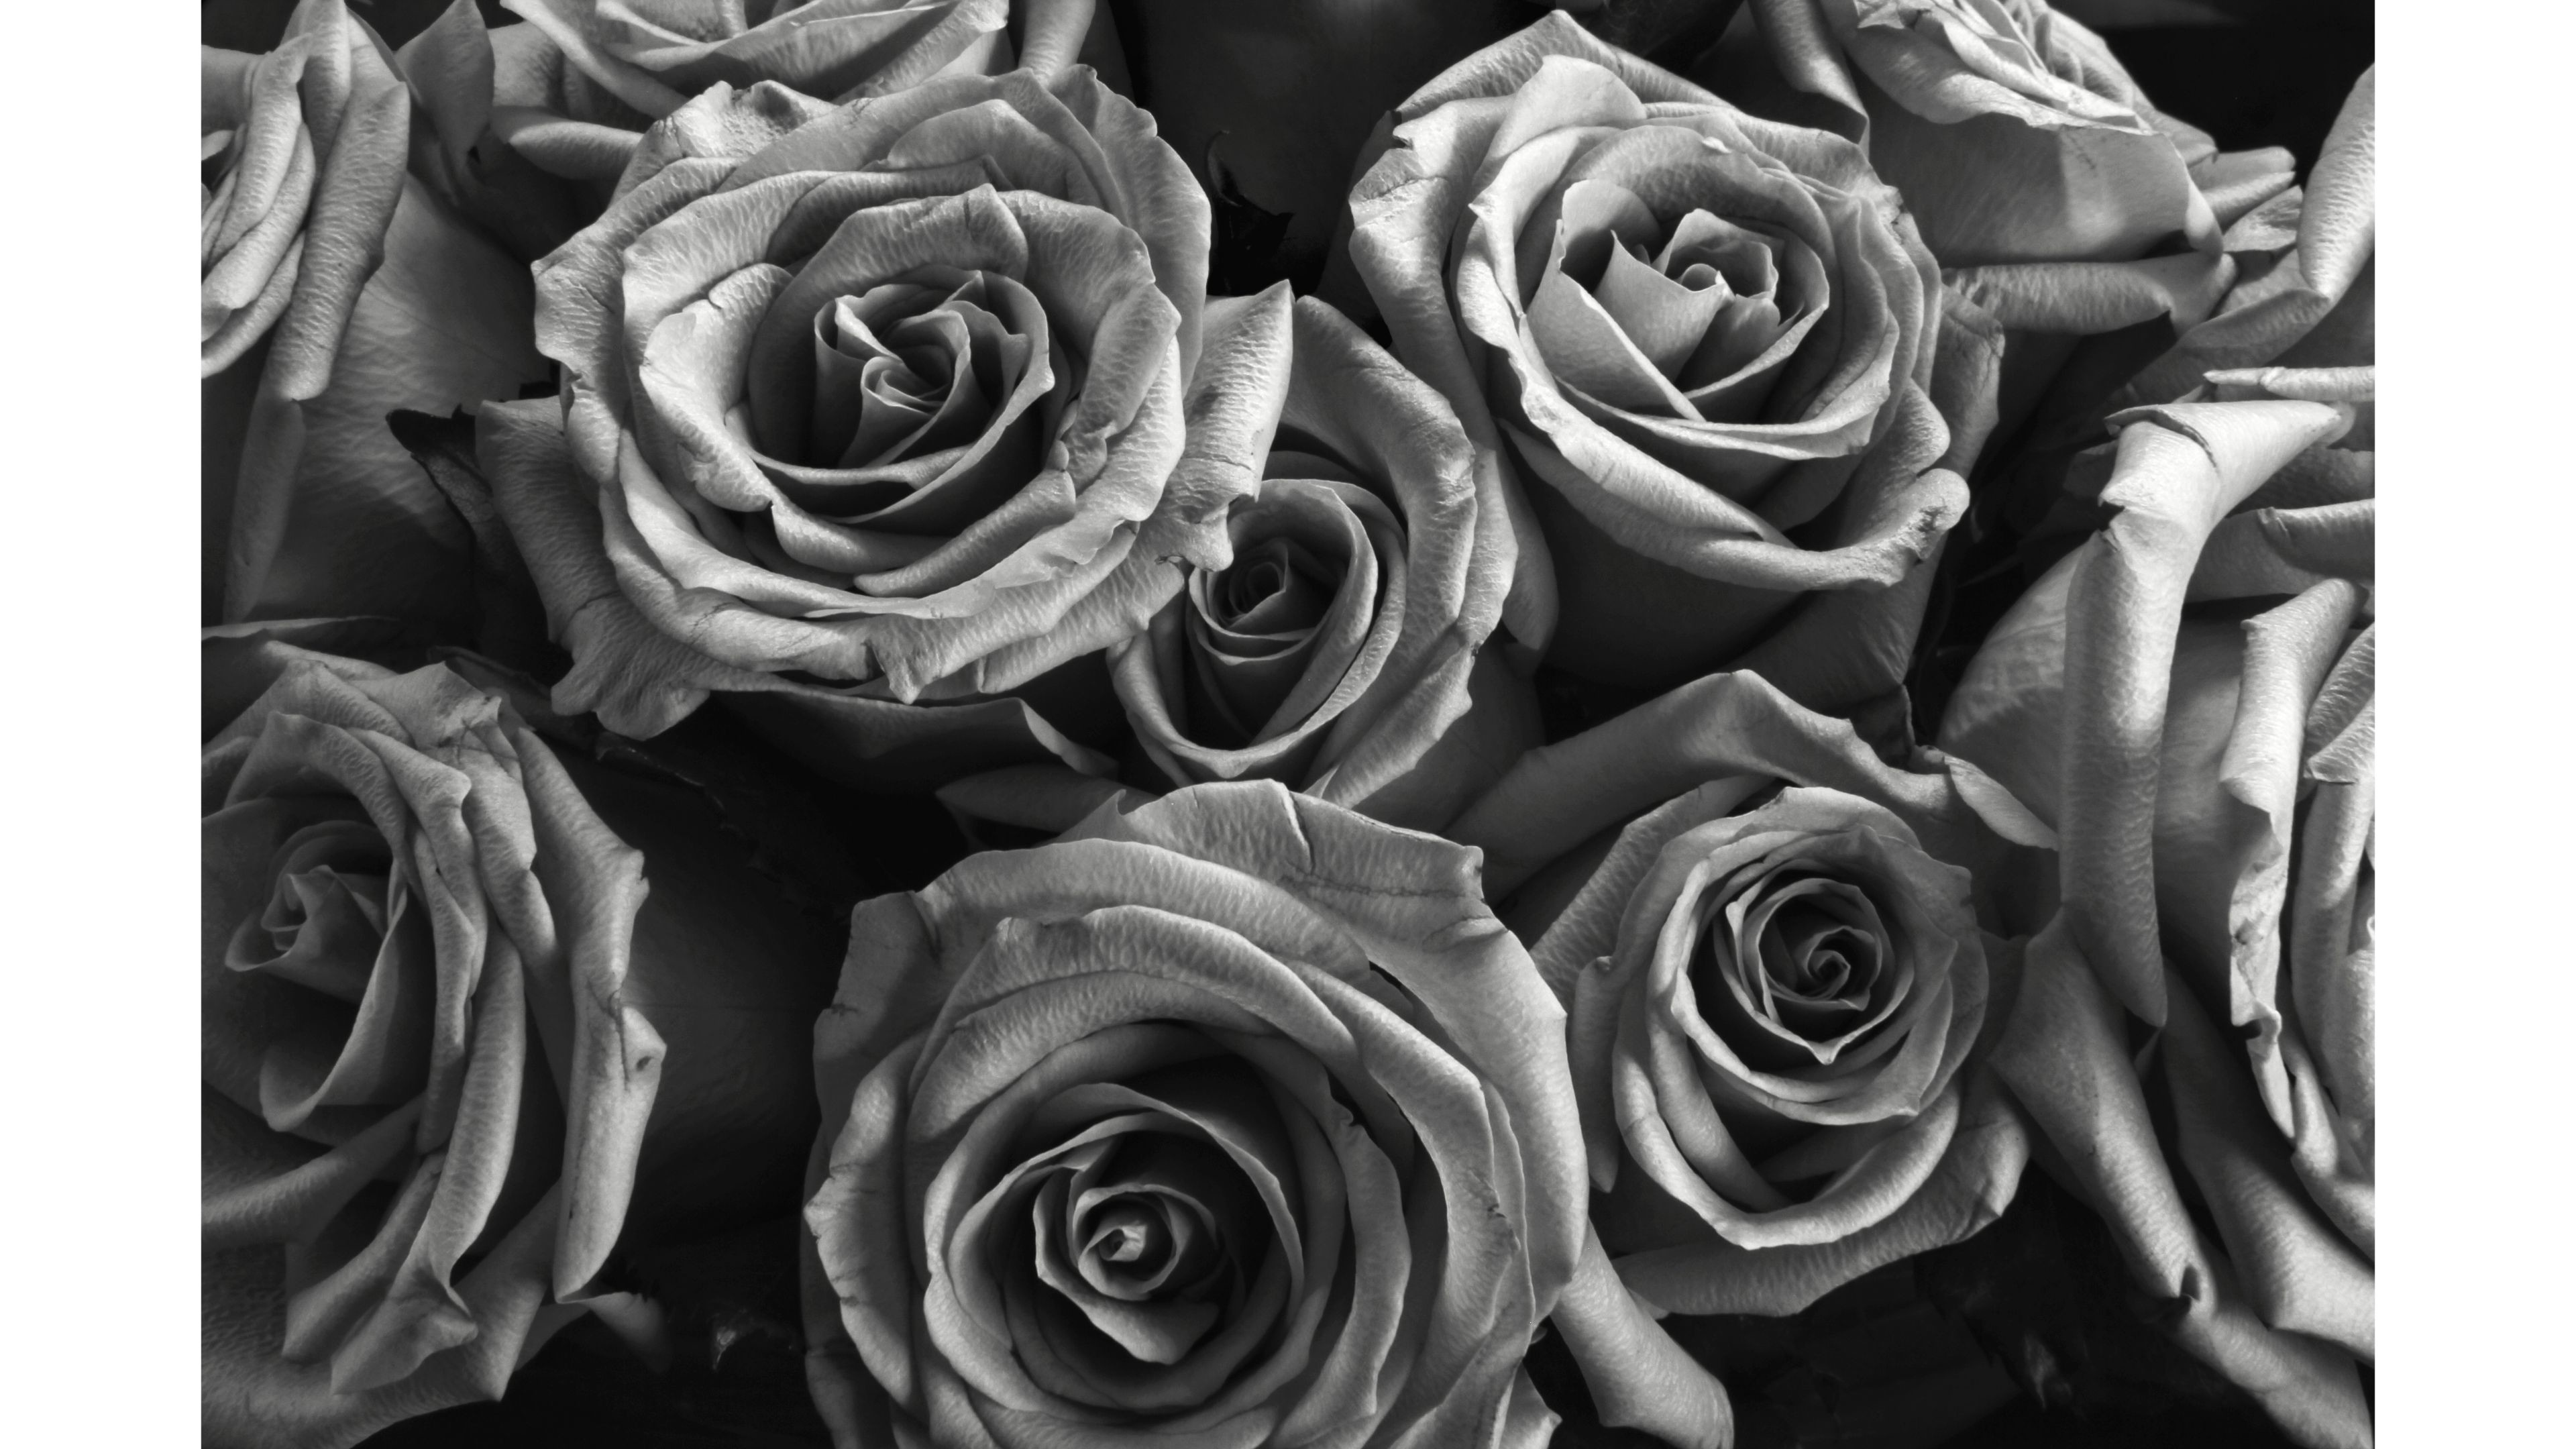 Black And White Rose Wallpaper (61+ Images